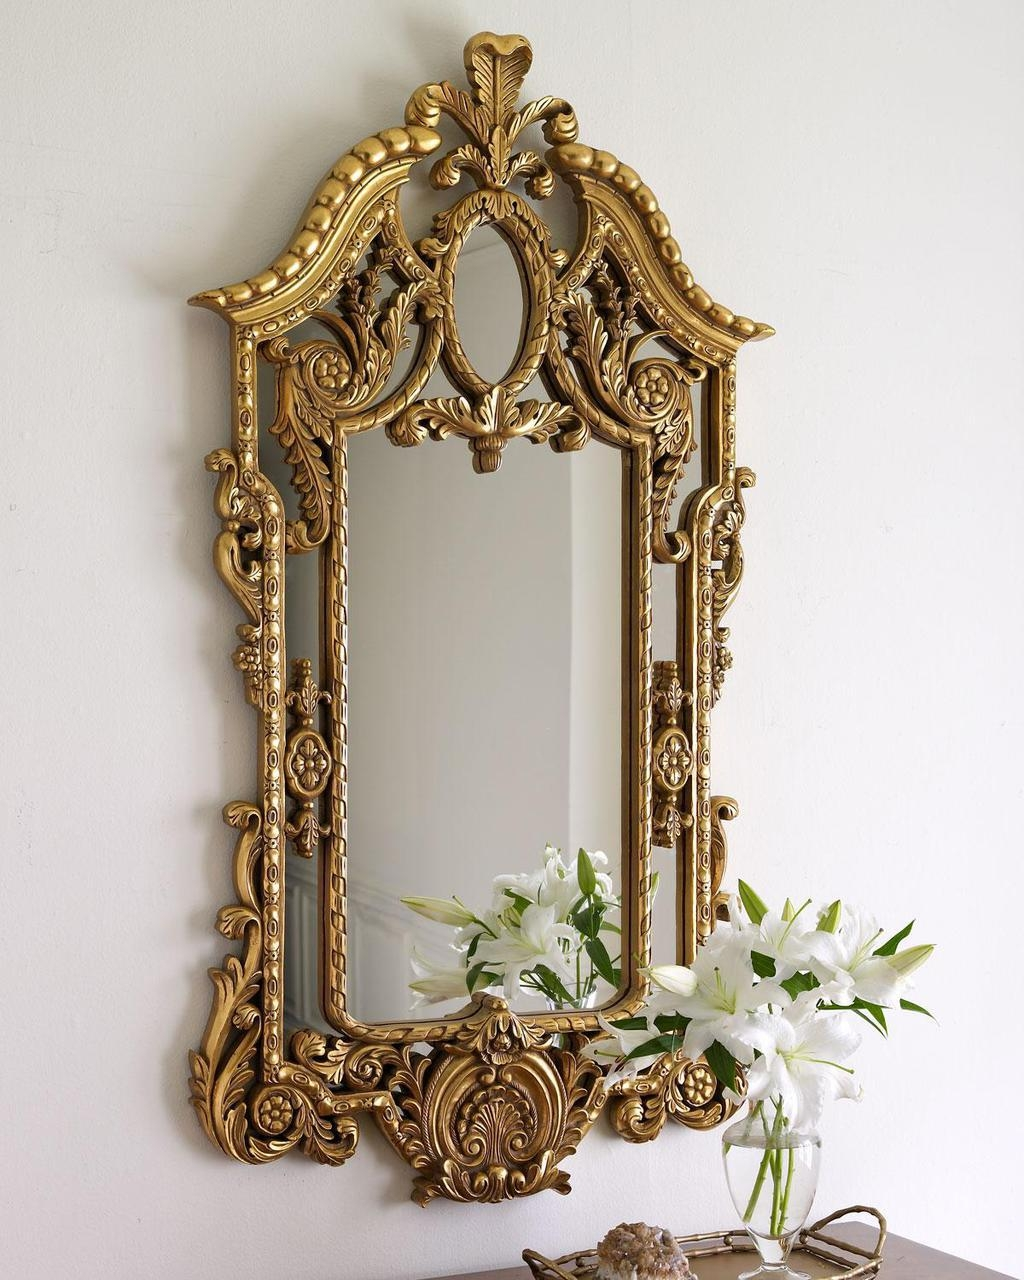 Queen Mirror Frame With Golden Framework Pretty And Expensive Within Expensive Mirrors (View 6 of 15)